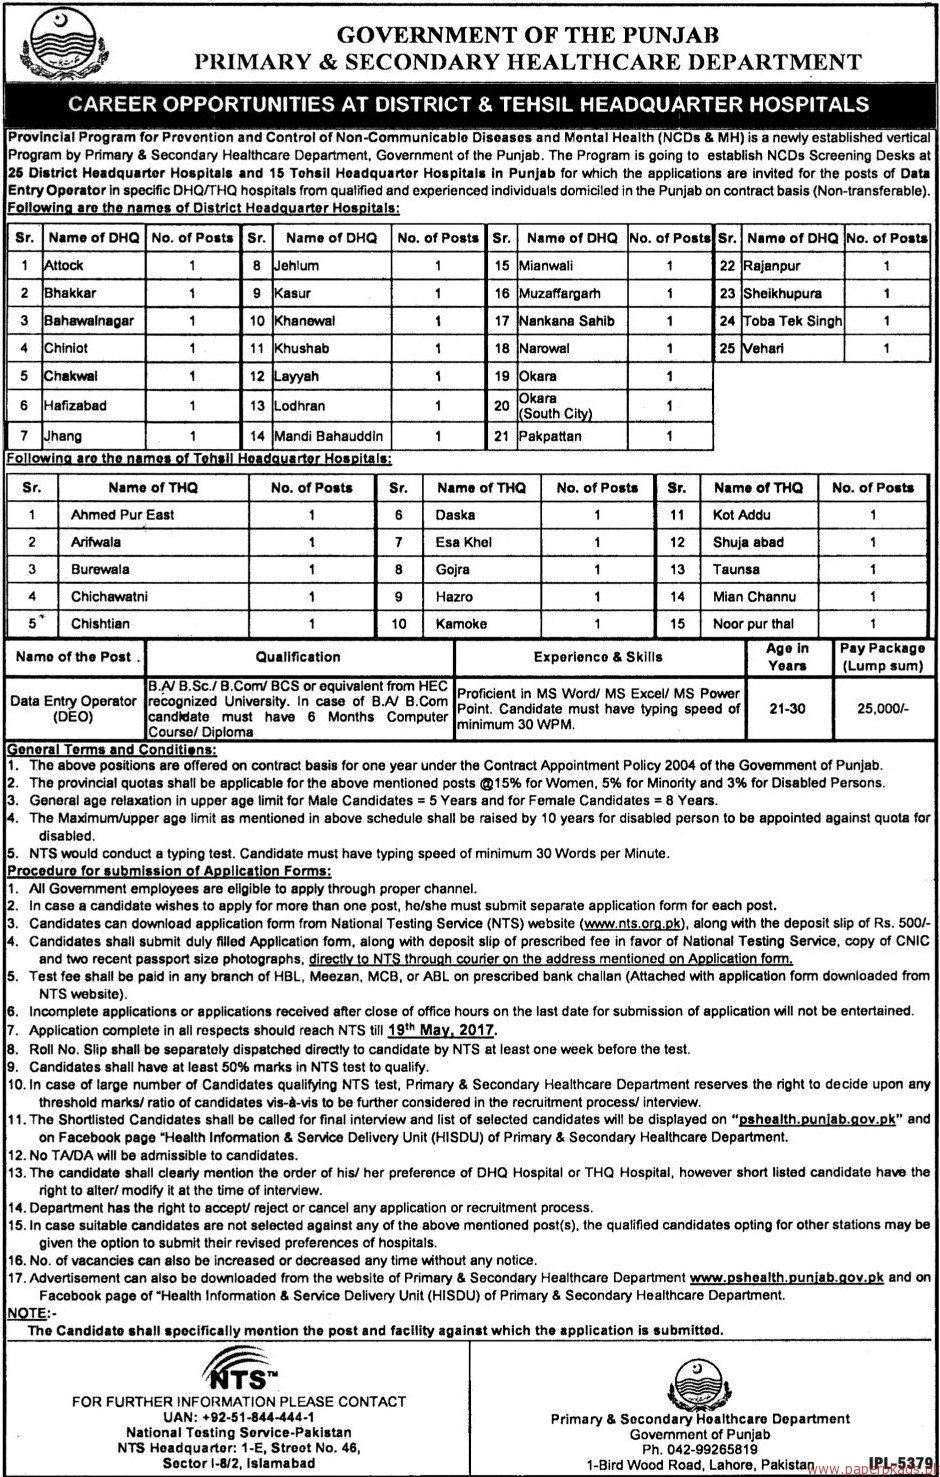 Government of the Punjab - Primary & Secondary HealthCare Department Jobs